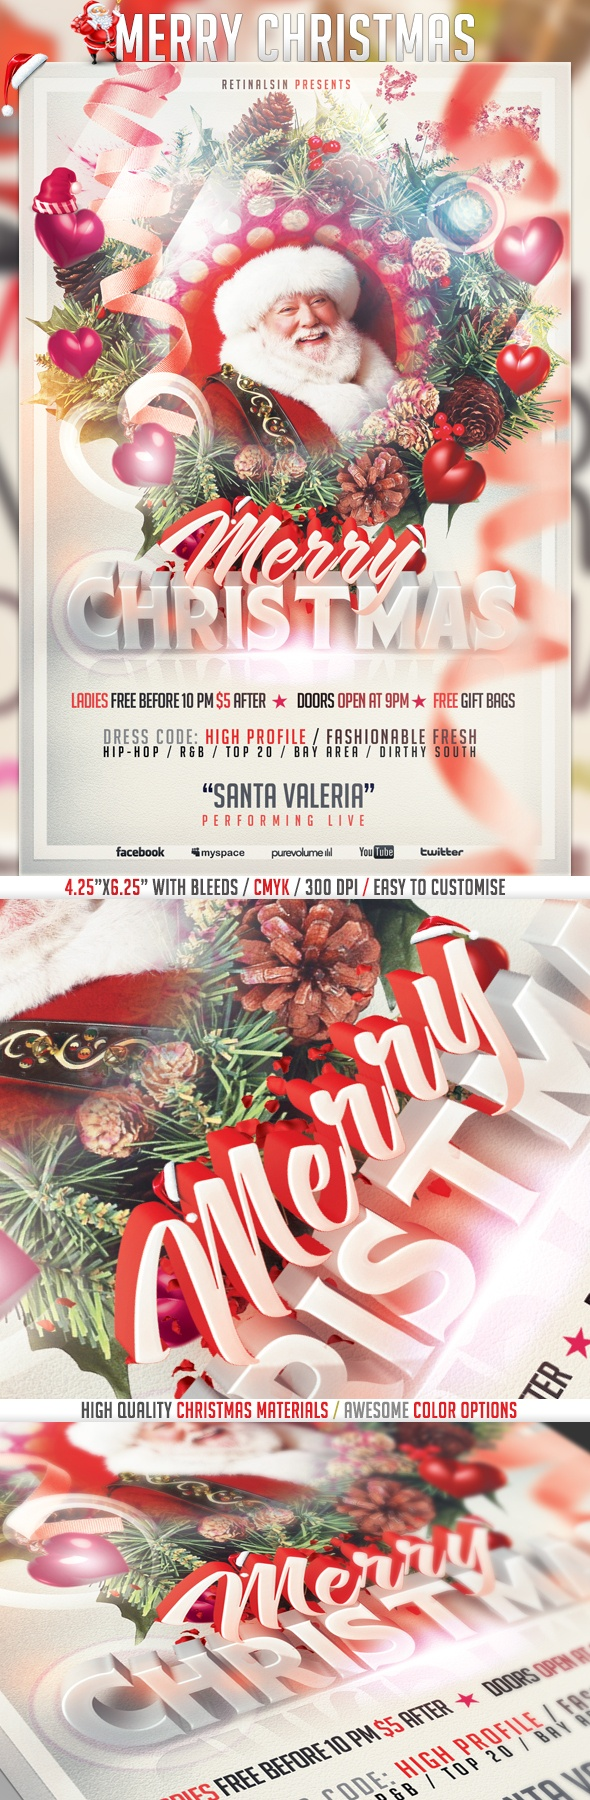 best images about christmas christmas parties psd merry christmas flyer template hq by serhat oumlzalp via behance